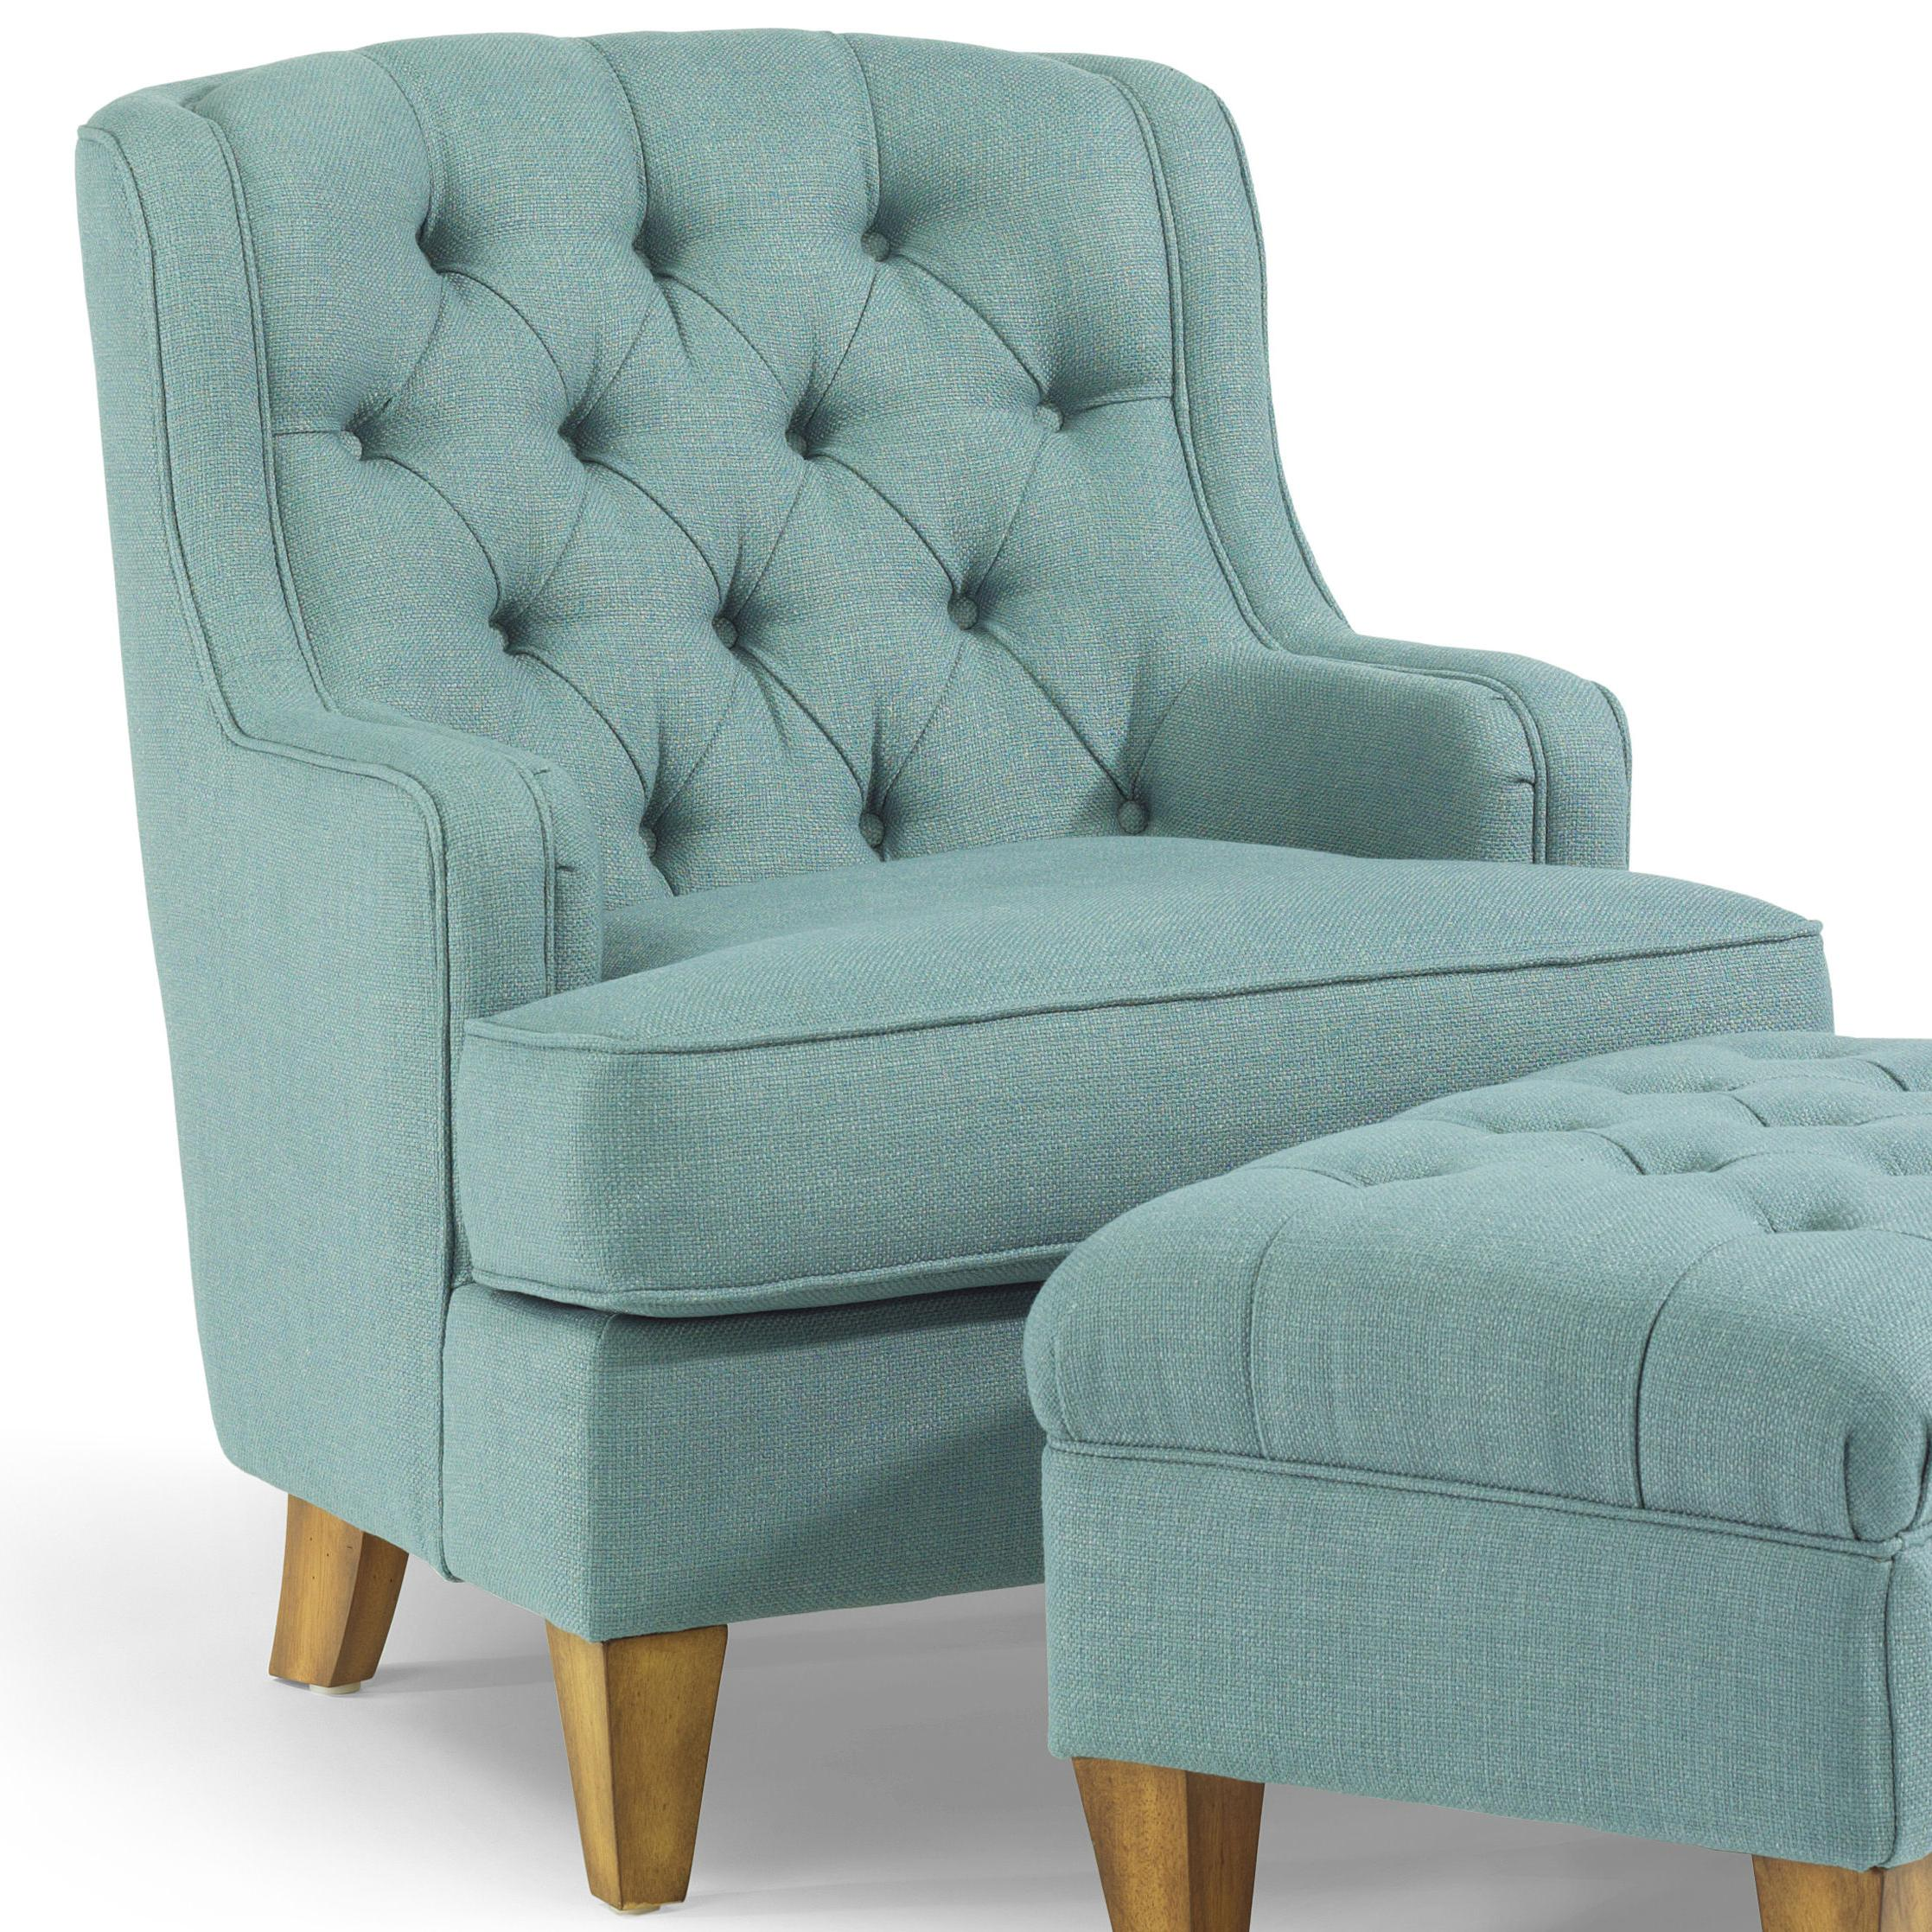 Flexsteel Accents Terrace Button Tufted Chair with Track Arms